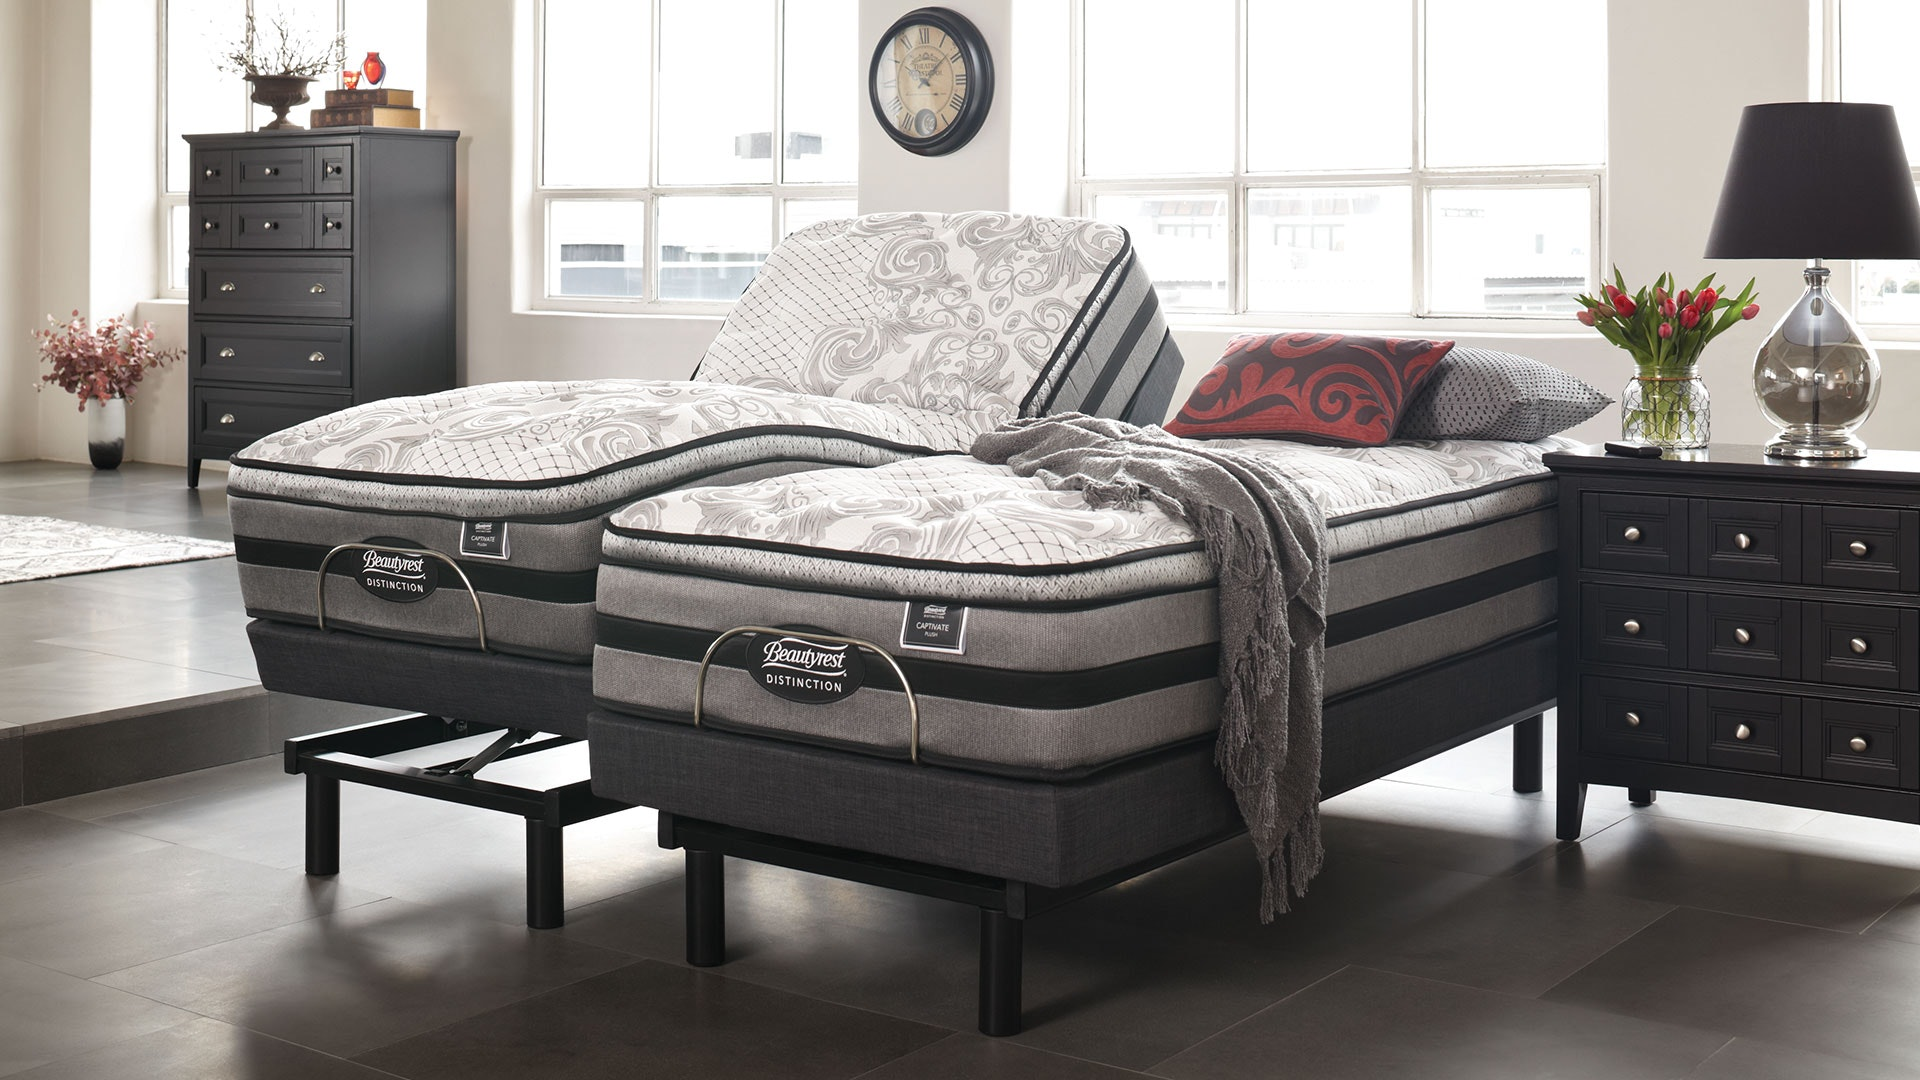 Beautyrest Captivate Plush Split Super King Mattress with Lifestyle Adjustable Base by Tempur